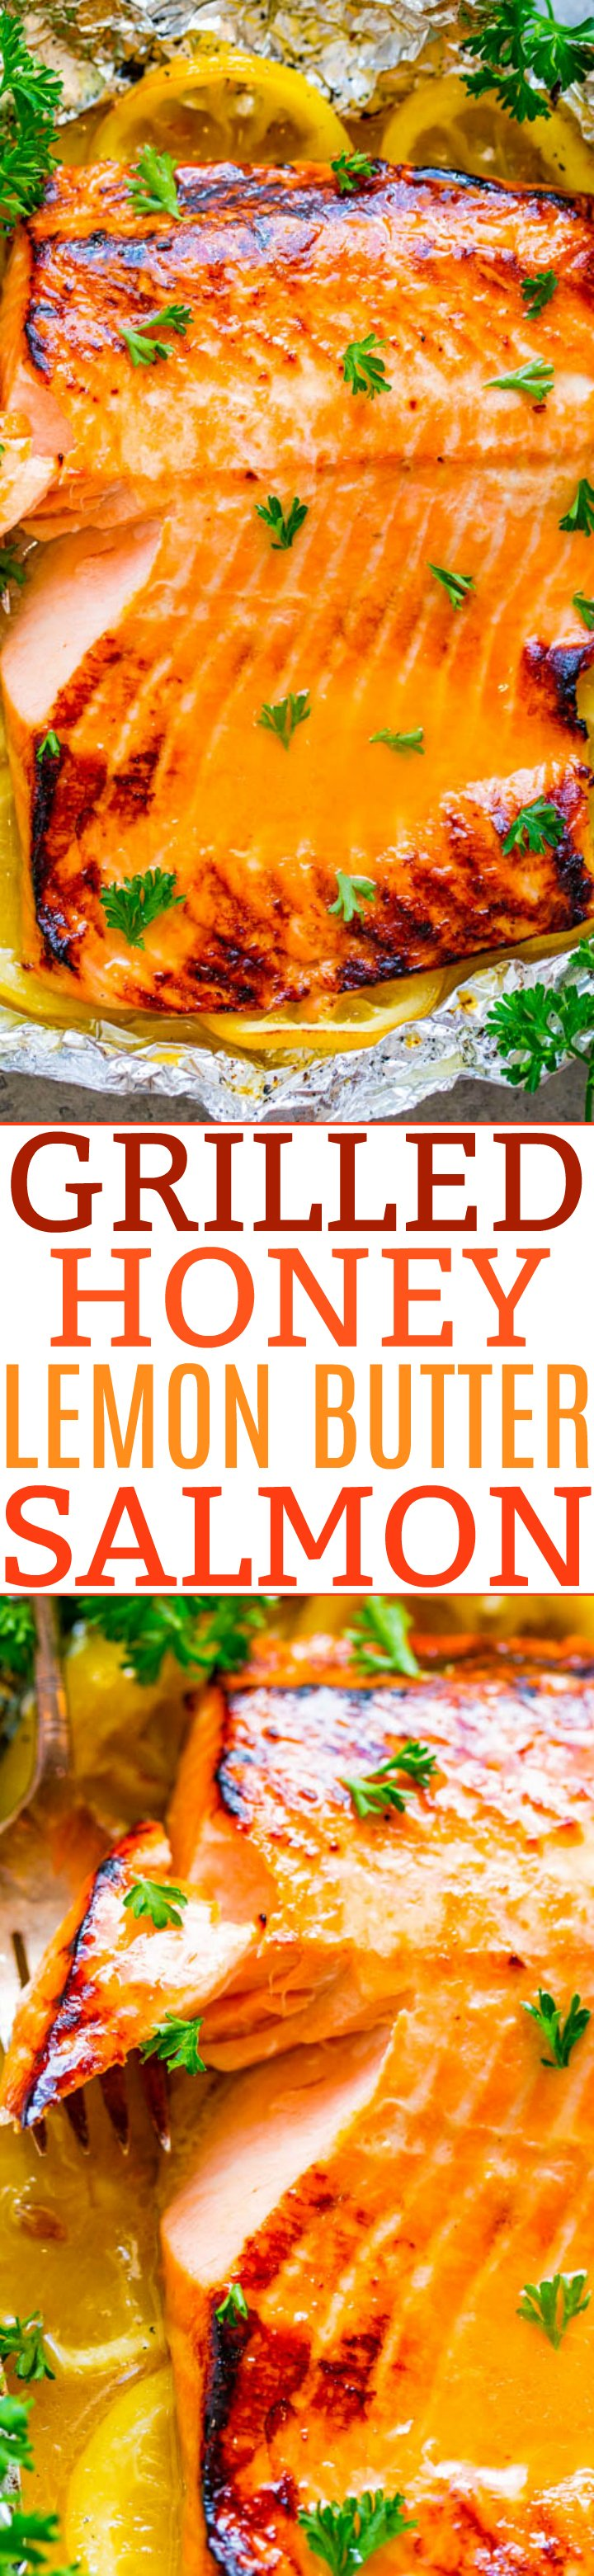 Grilled Honey Lemon Butter Salmon -EASY, ready in 10 minutes, and a FOOLPROOF way to make grilled salmon!! Wonderfully tender, so juicy, just melts in your mouth, and has FABULOUS flavor!!